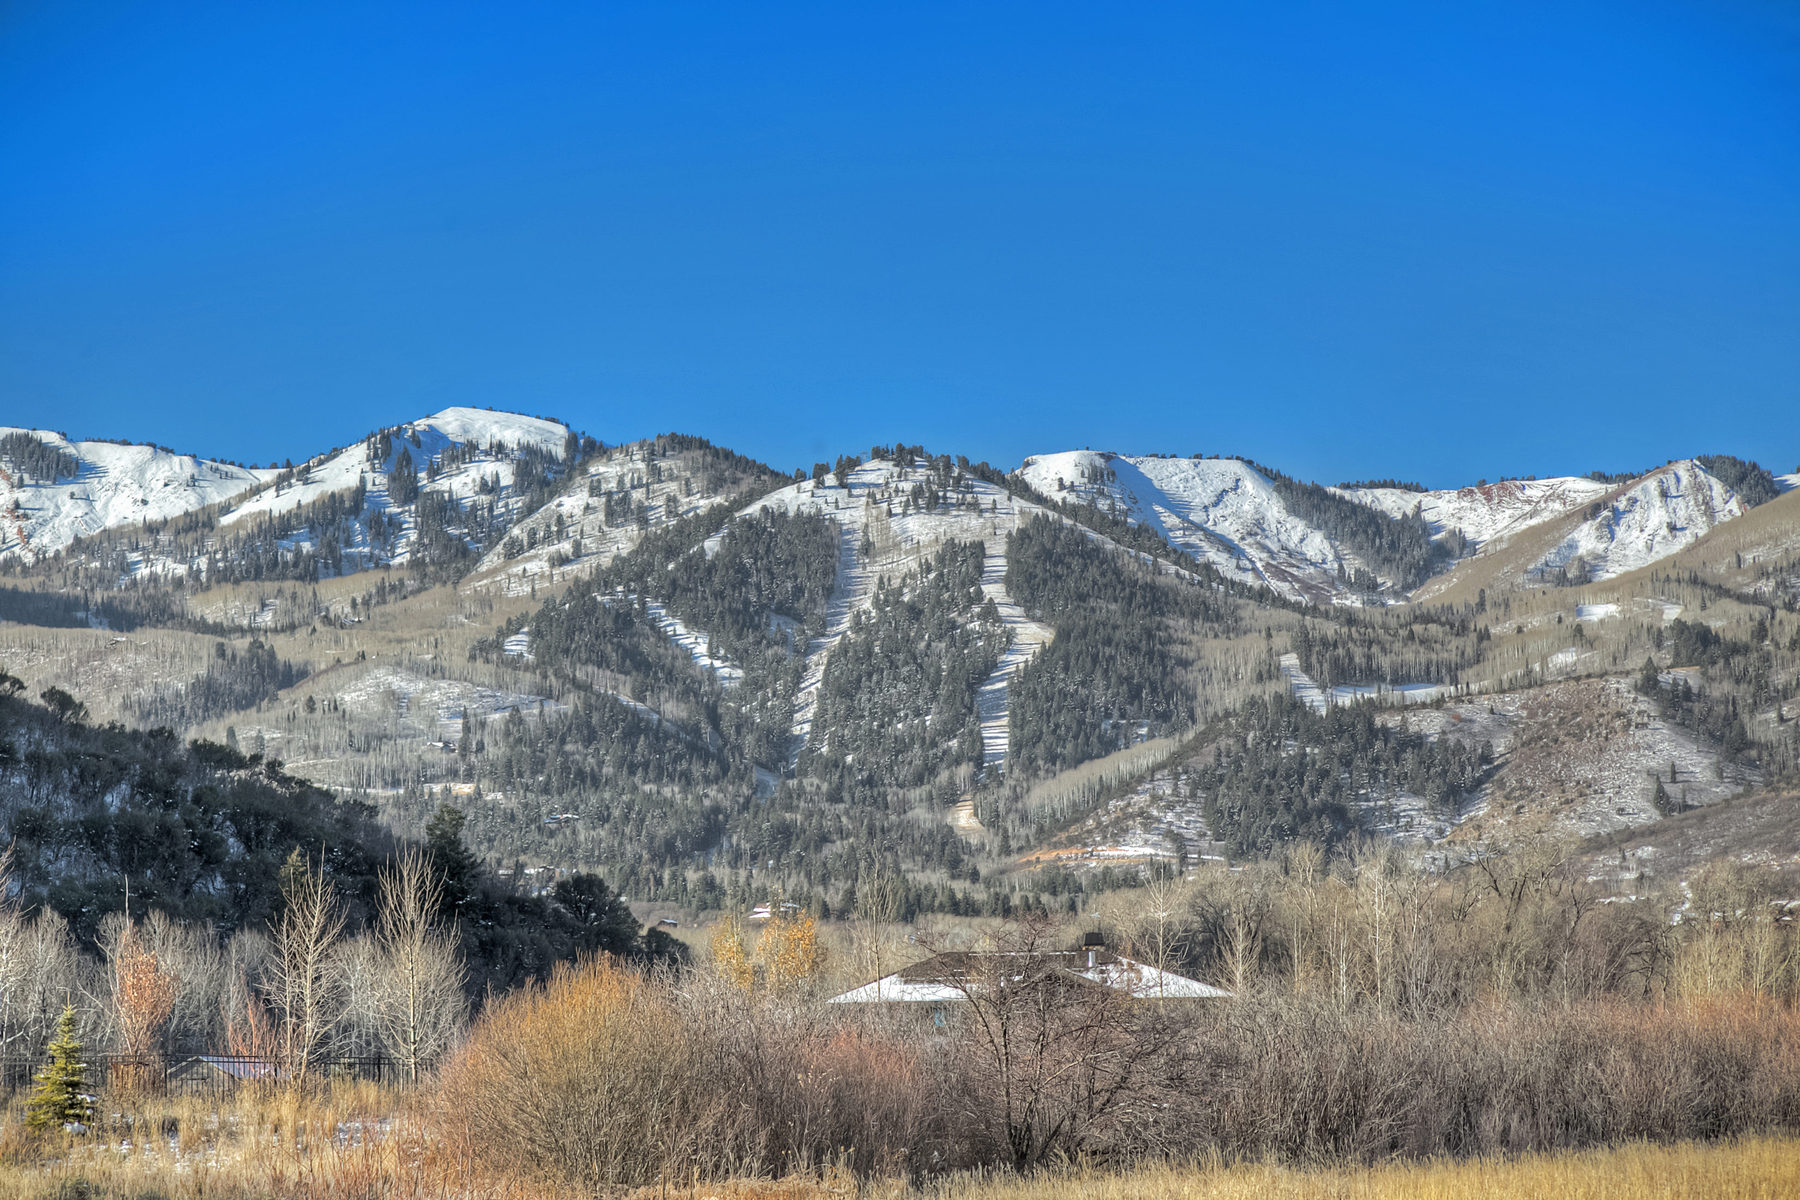 Property For Sale at Over 5 Acres, Quarry Mountain Ranch Homesite